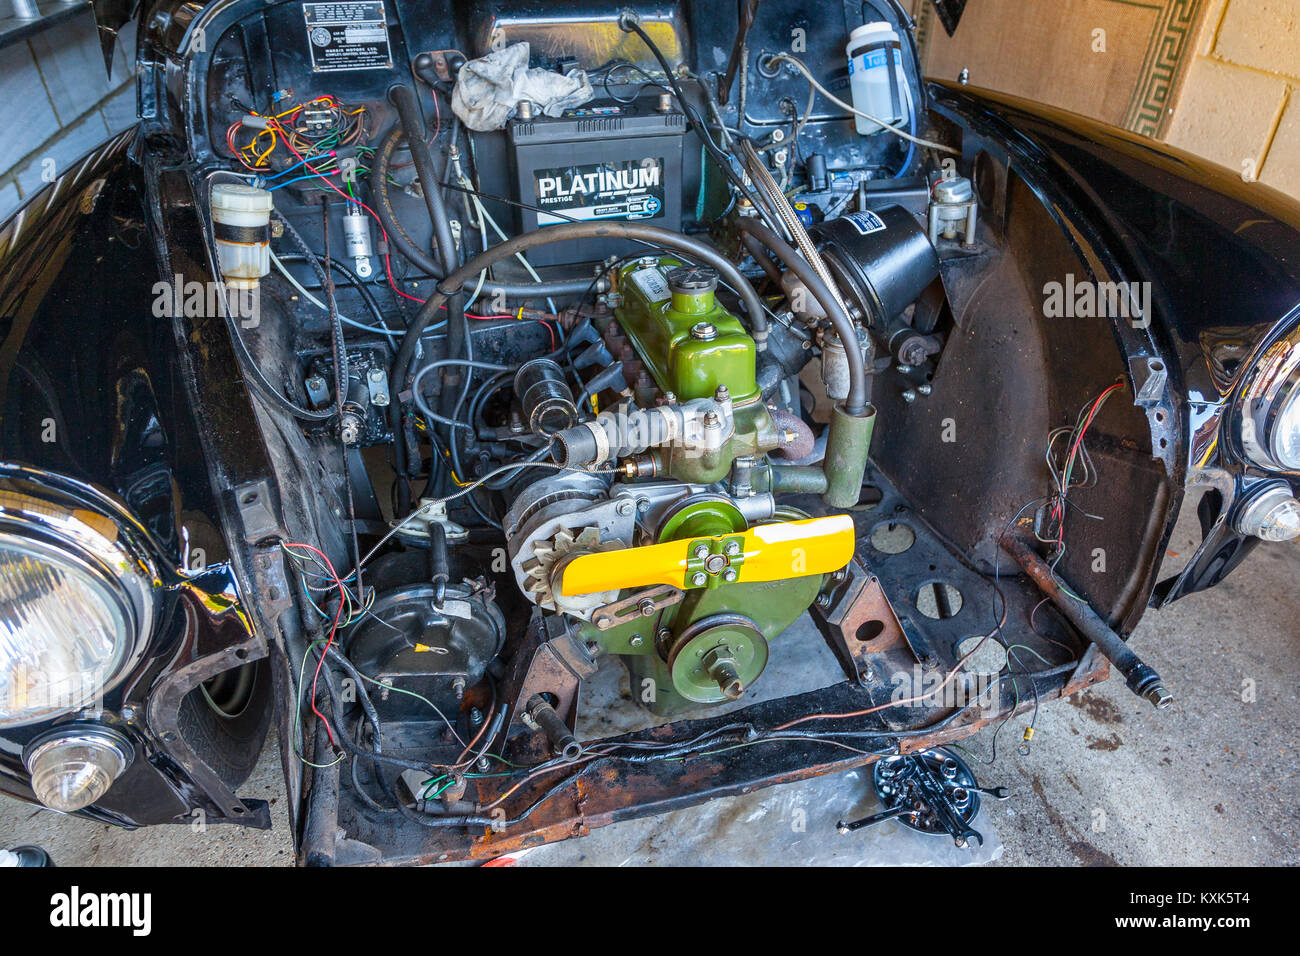 The engine bay of a 1957 Morris Minor classic car - Stock Image